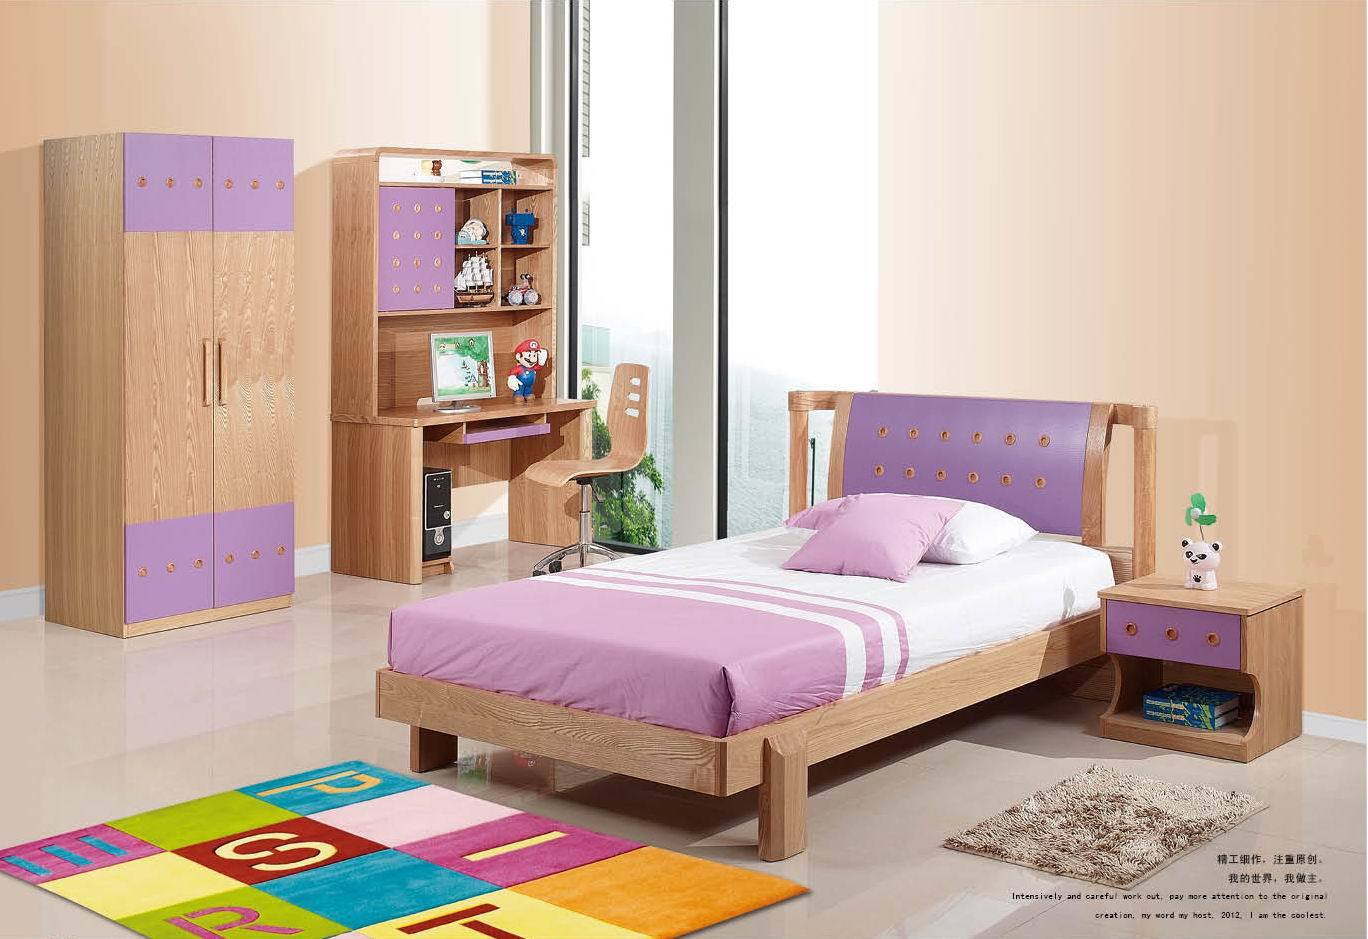 china kids bedroom set jkd 20130 china kids bedroom kids furniture. Black Bedroom Furniture Sets. Home Design Ideas